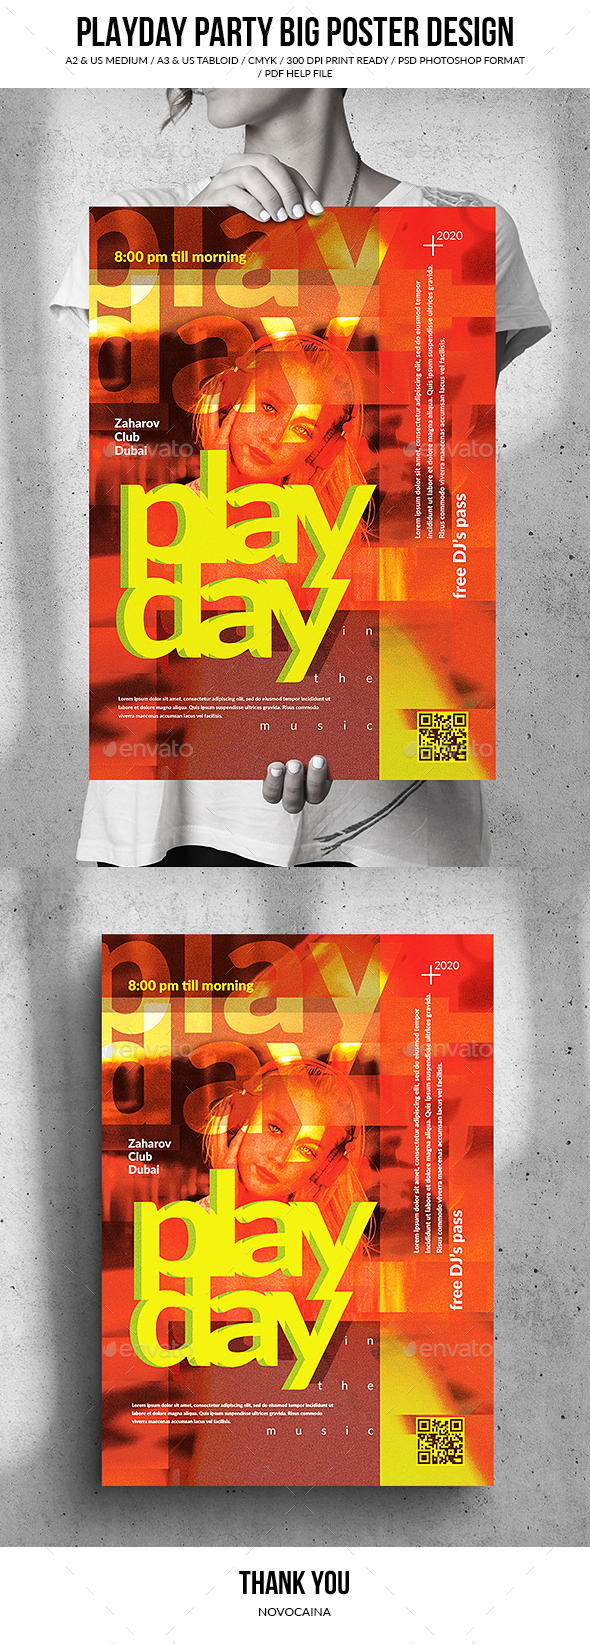 Flyers PSD – PlayDay Birthday party – Immense Song Poster Originate – Download